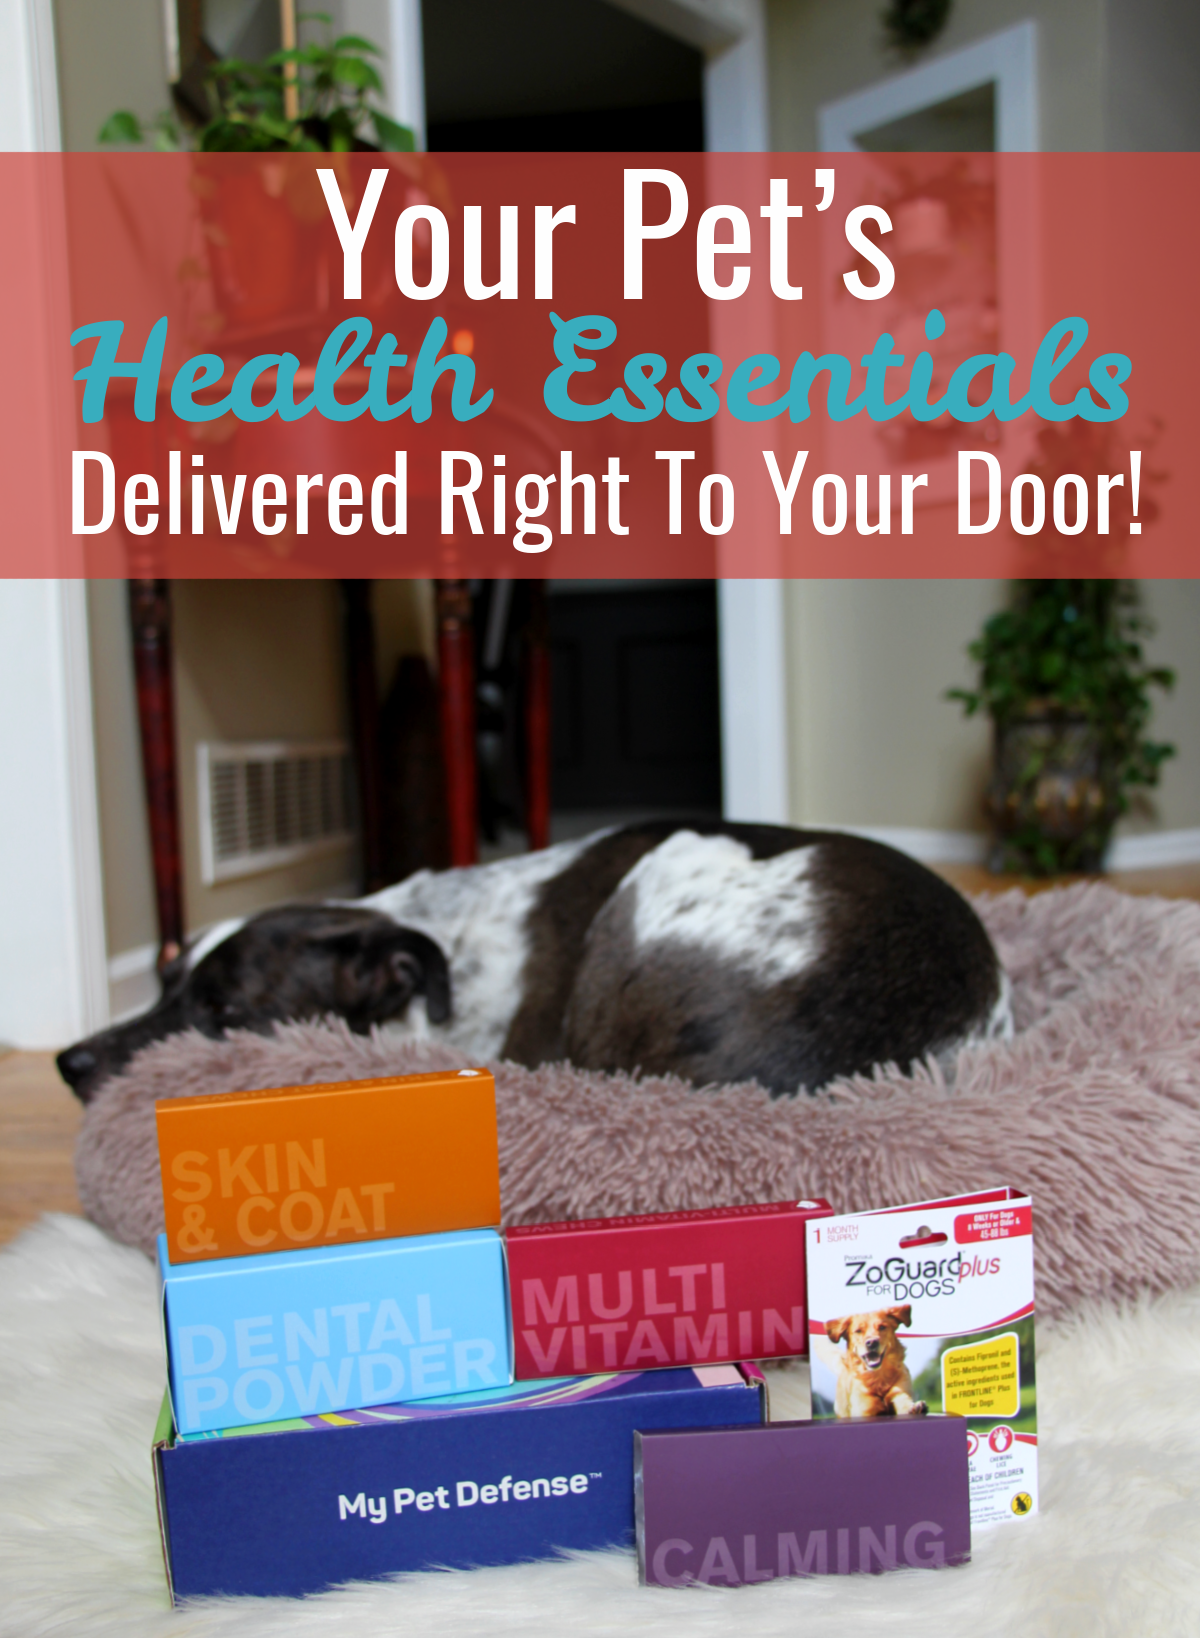 Your Pet's Health Essentials Delivered Right To Your Door!